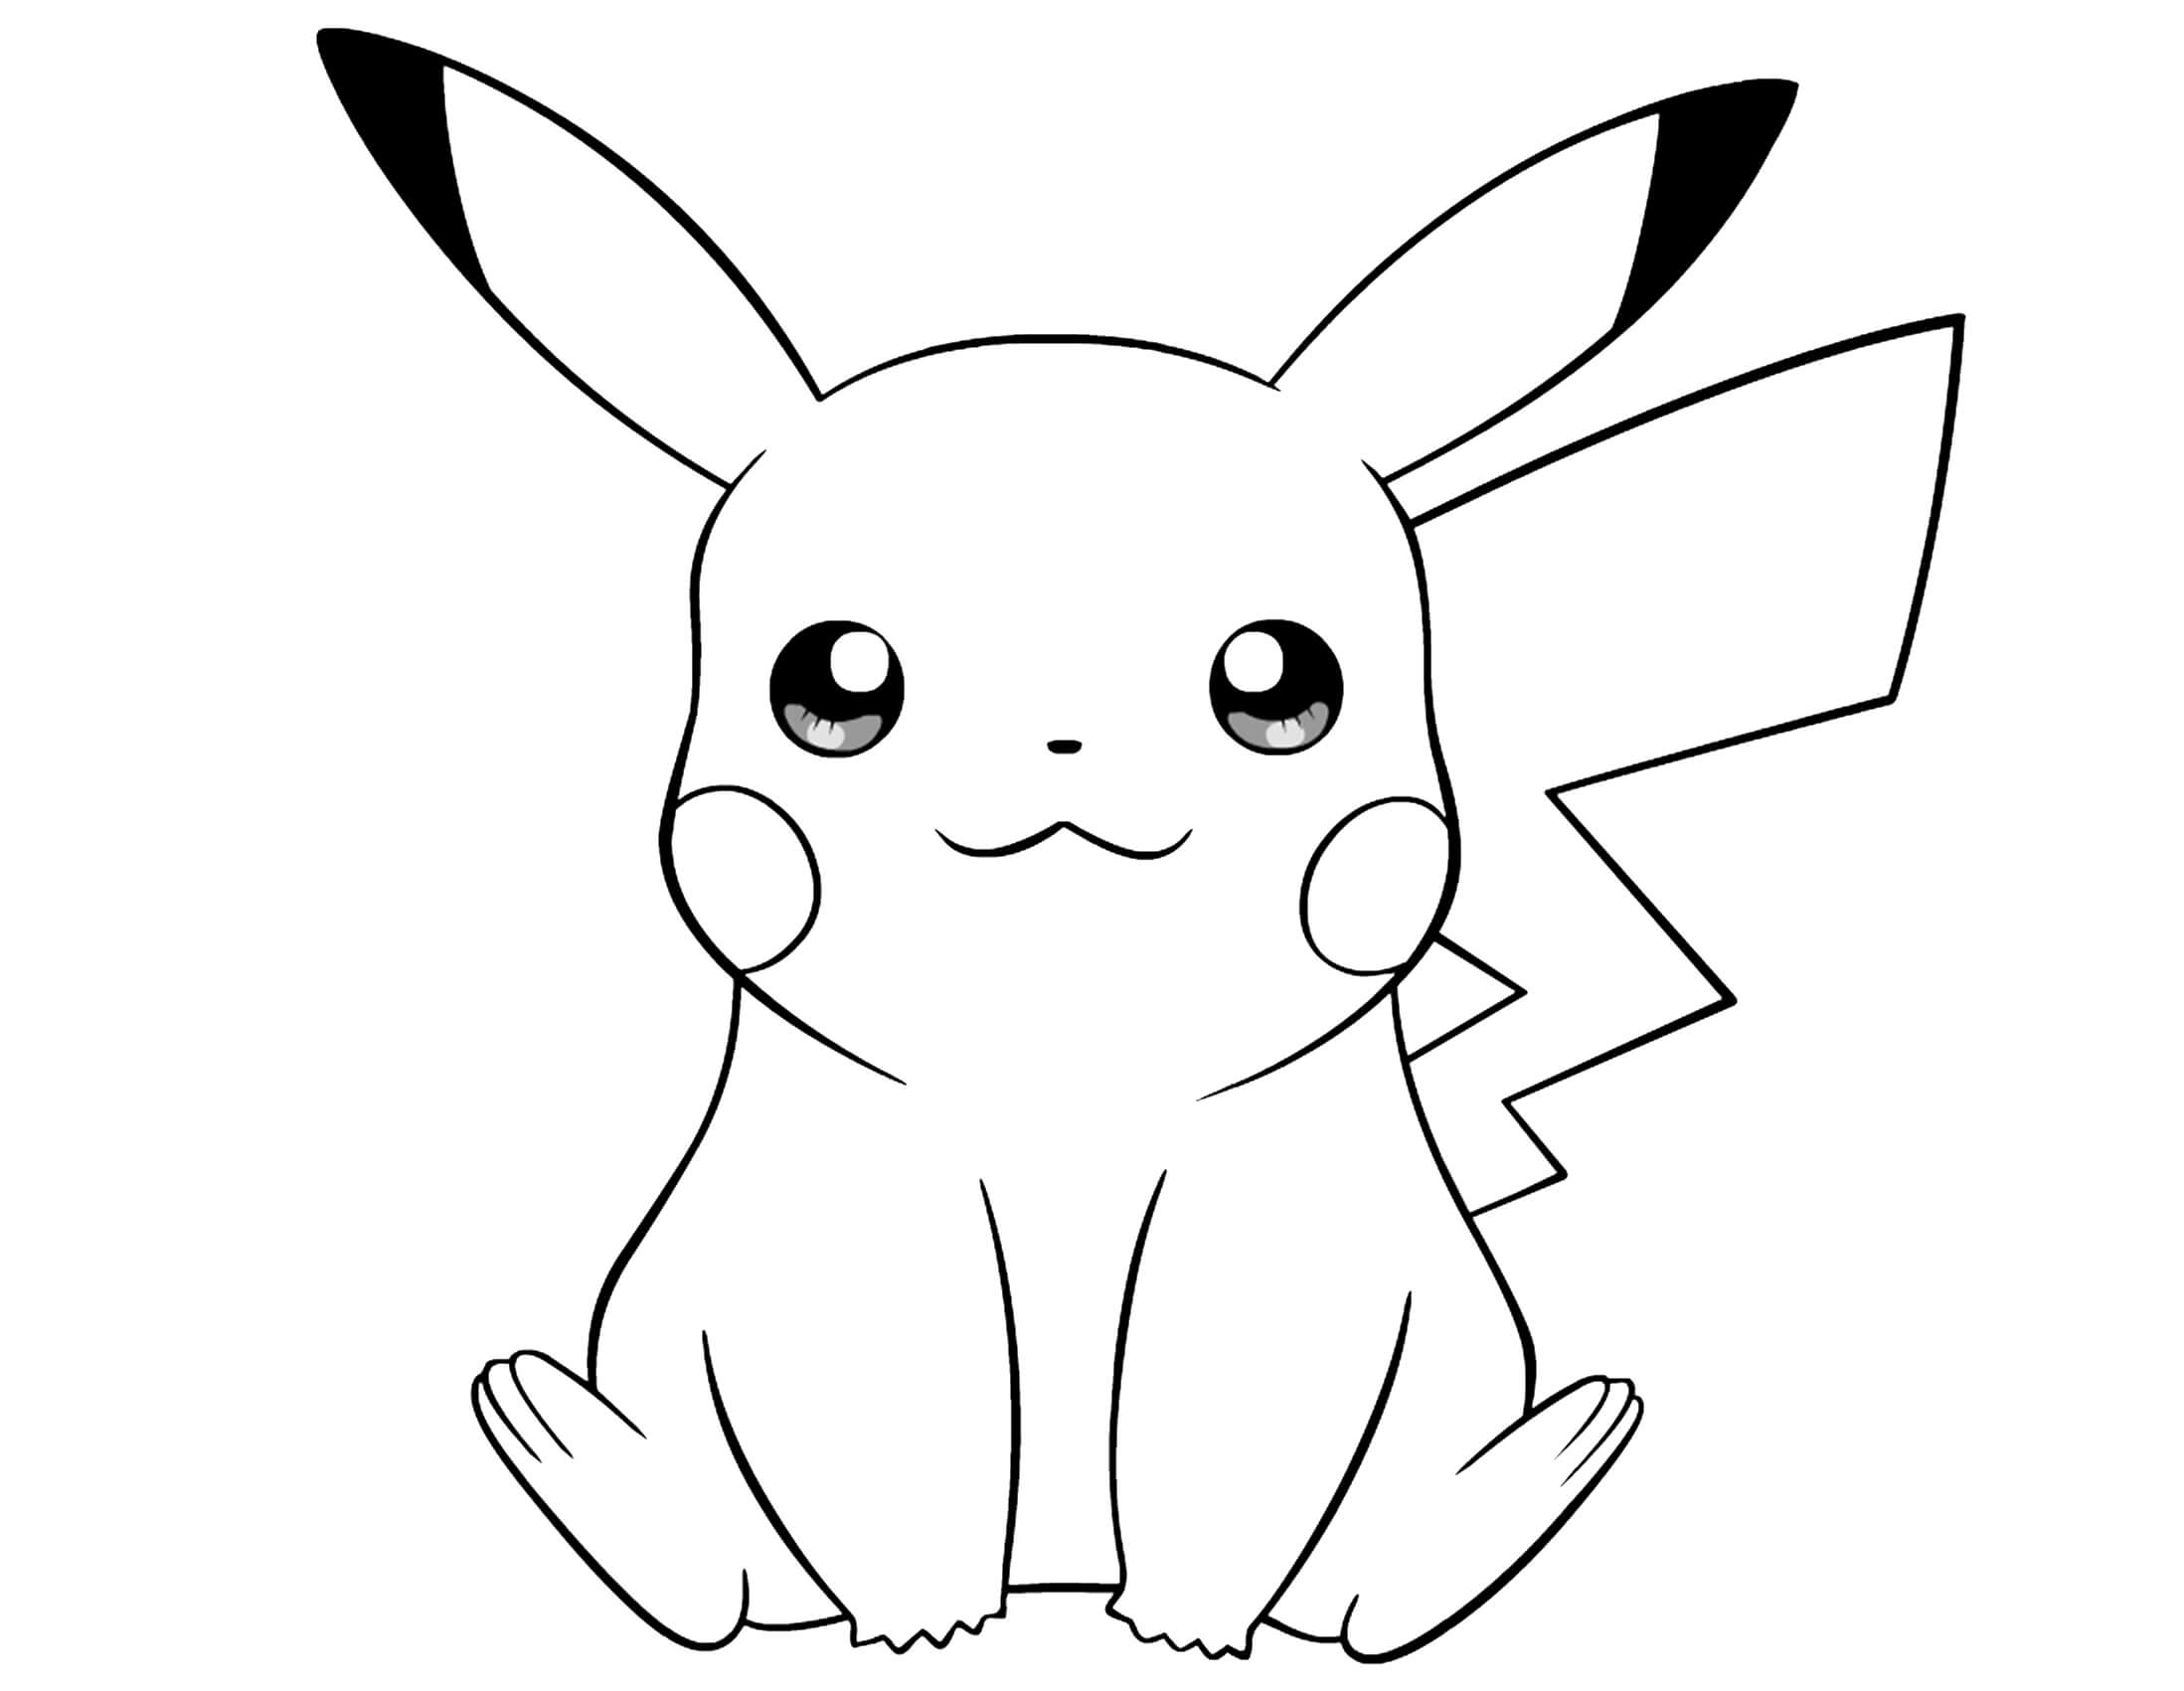 Coloring Pages Pikachu Pikachu coloring pages